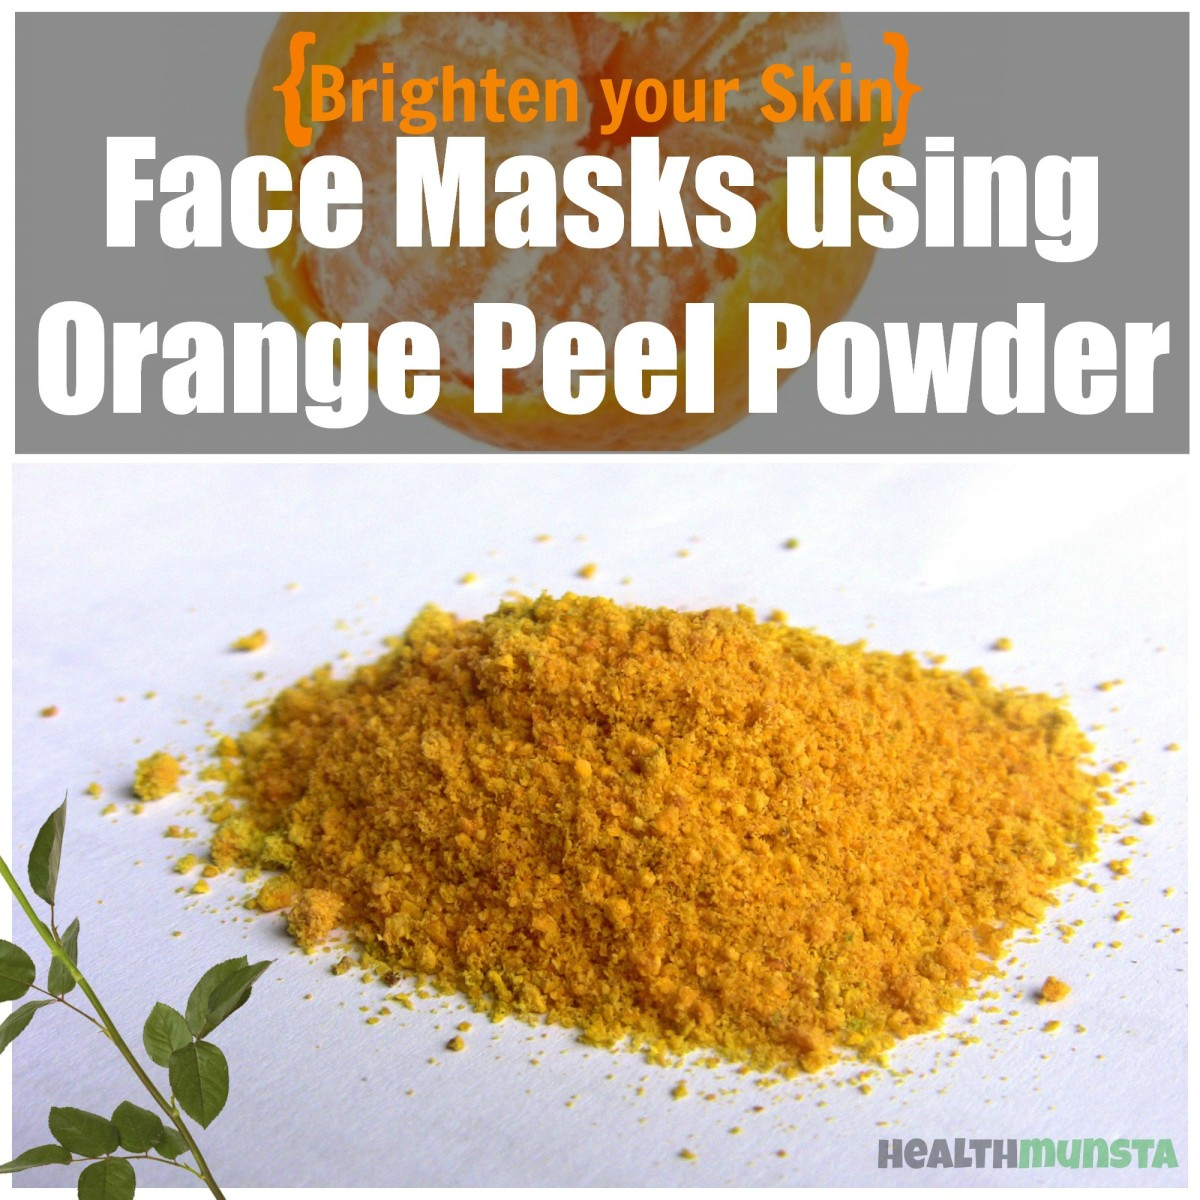 How to make different face masks from orange peel powder to soften and brighten your skin.